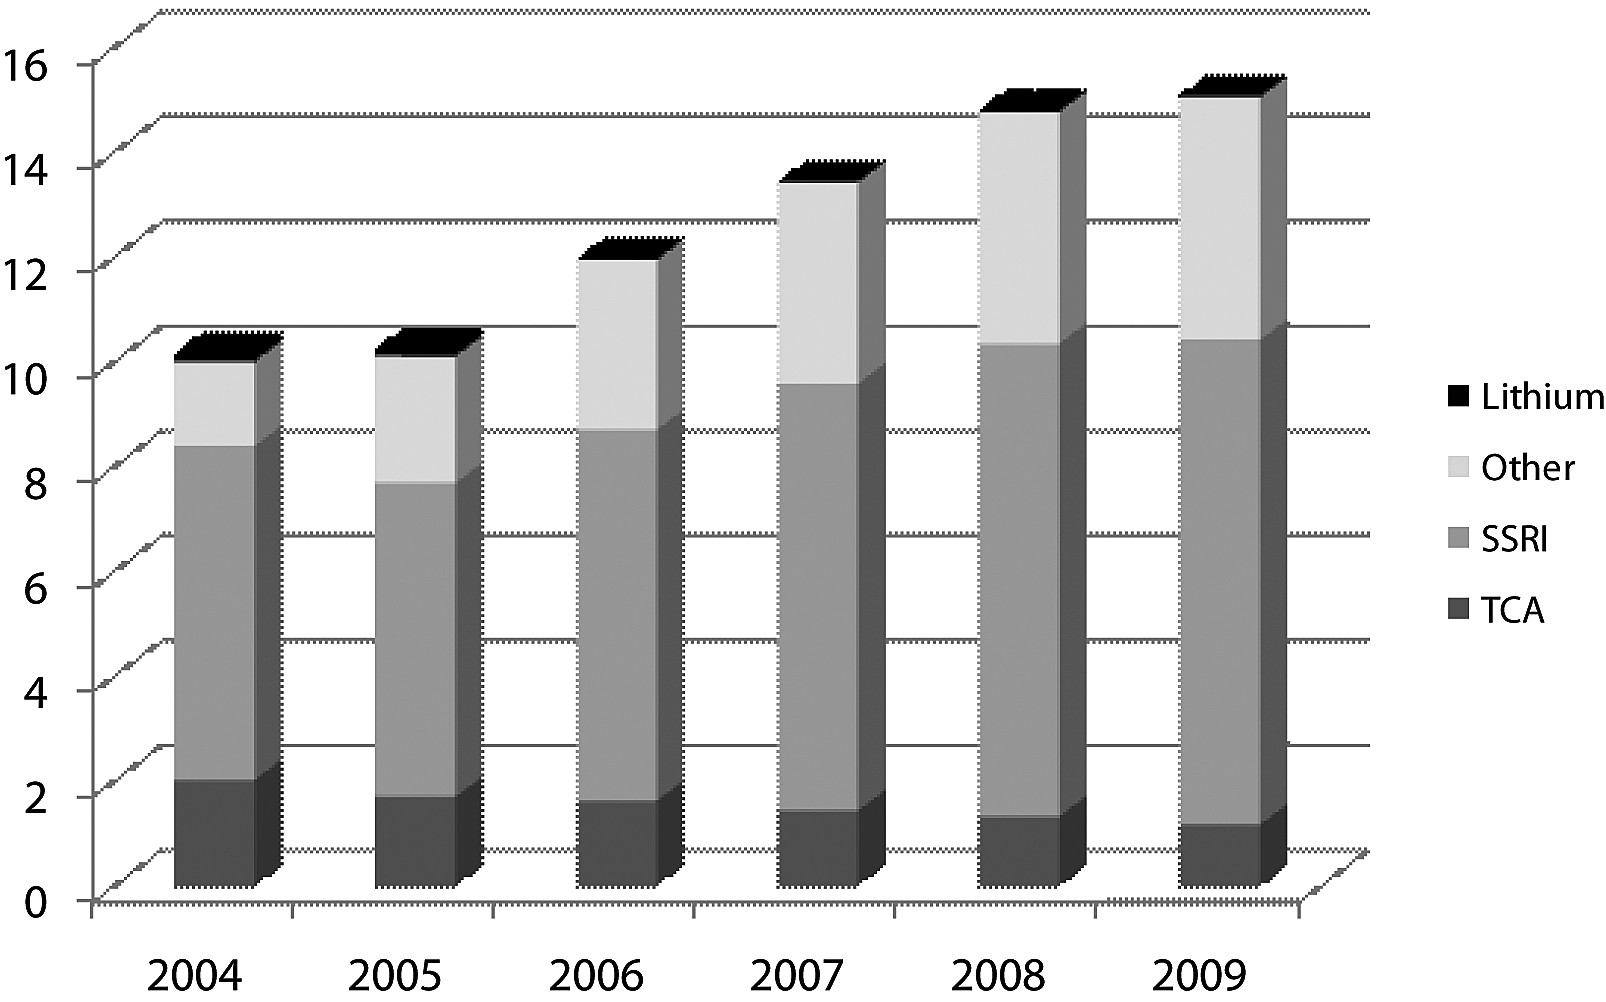 Fig. 3. The consumption of antidepressants in DDD/1000 inhabilitans/day in 2004–2009